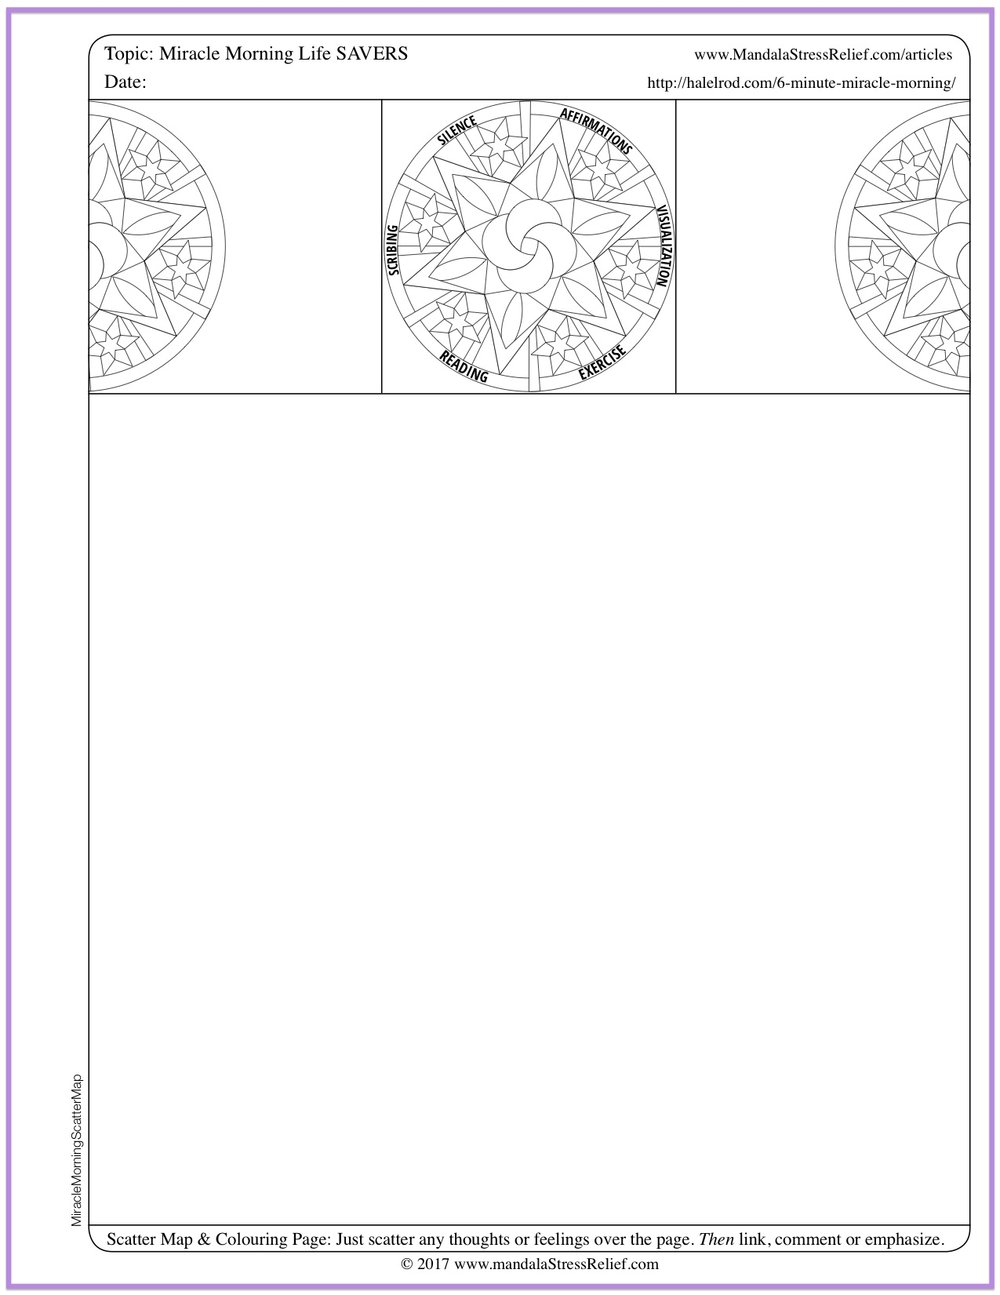 "Download a Miracle Morning ""cheat sheet summary""  in the form of a Scatter Map & Colouring Page you can use to make for your own notes."